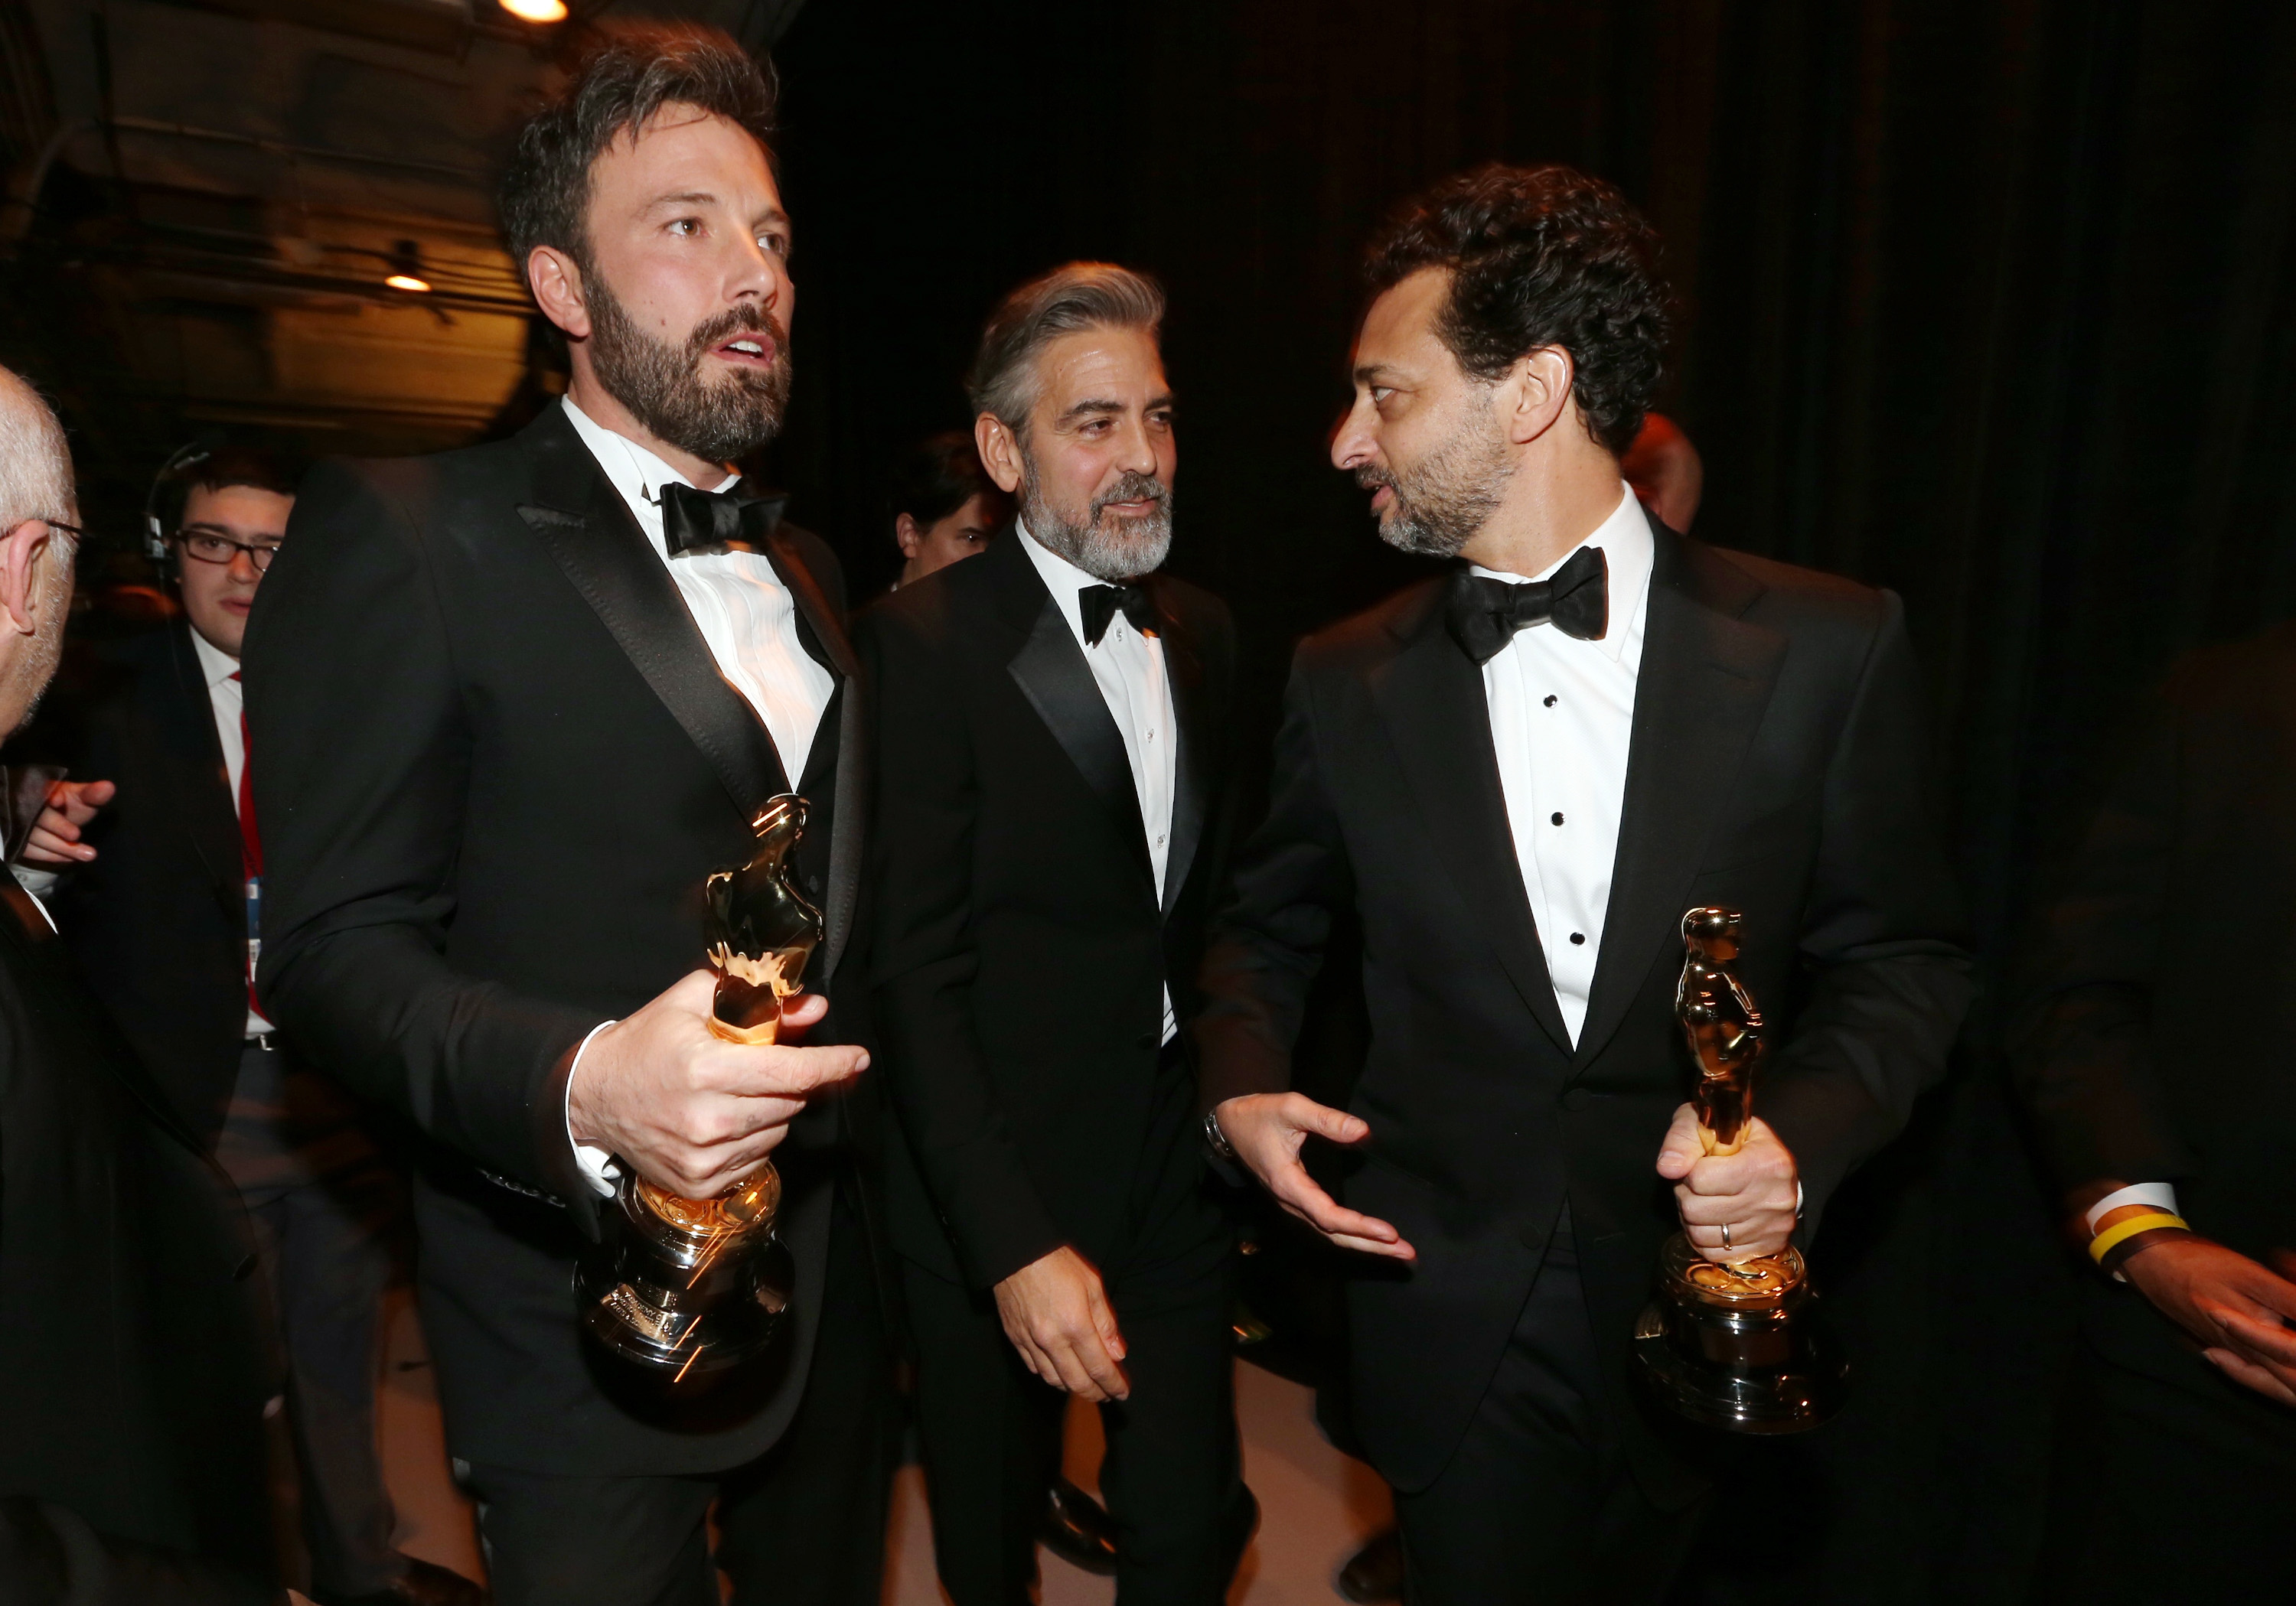 Ben Affleck, George Clooney, and Grant Heslov celebrated their Oscar win backstage.